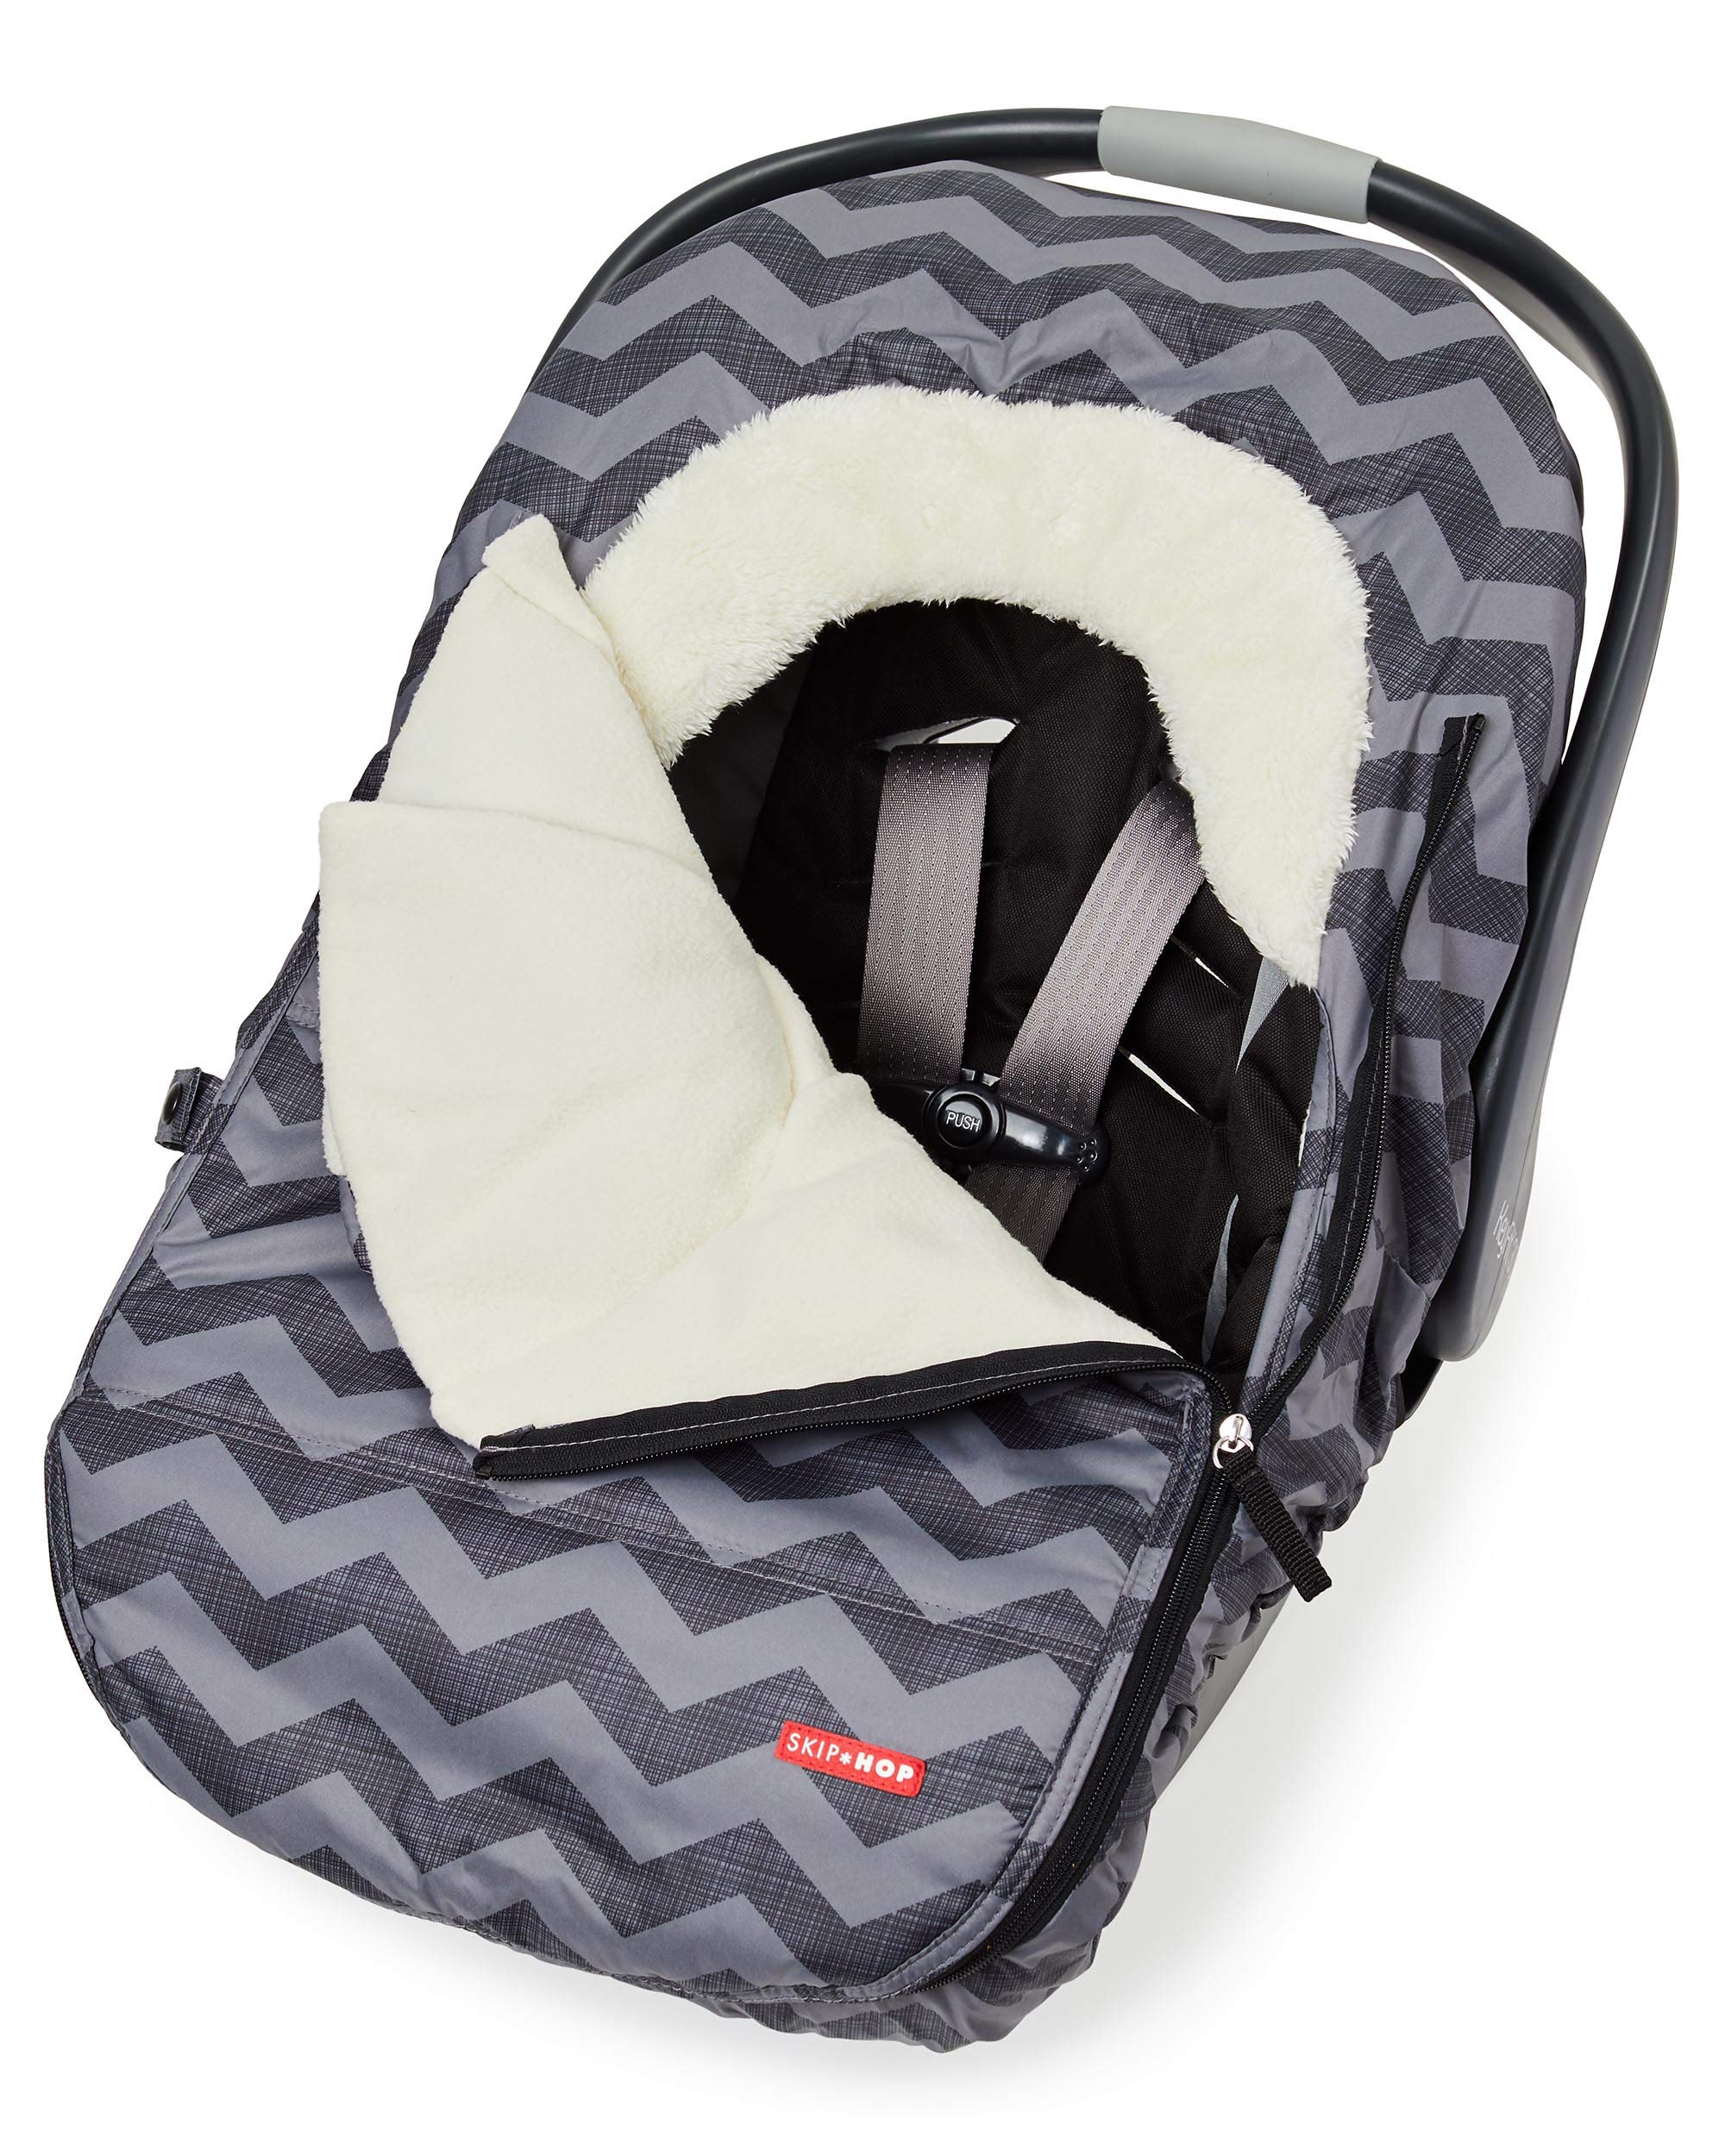 Skip Hop Stroll & Go Infant & Toddler Automotive Car Seat Cover Bunting Accessories, Universal Fit, Tonal Chevron, Black Chevron by Skip Hop (Image #4)